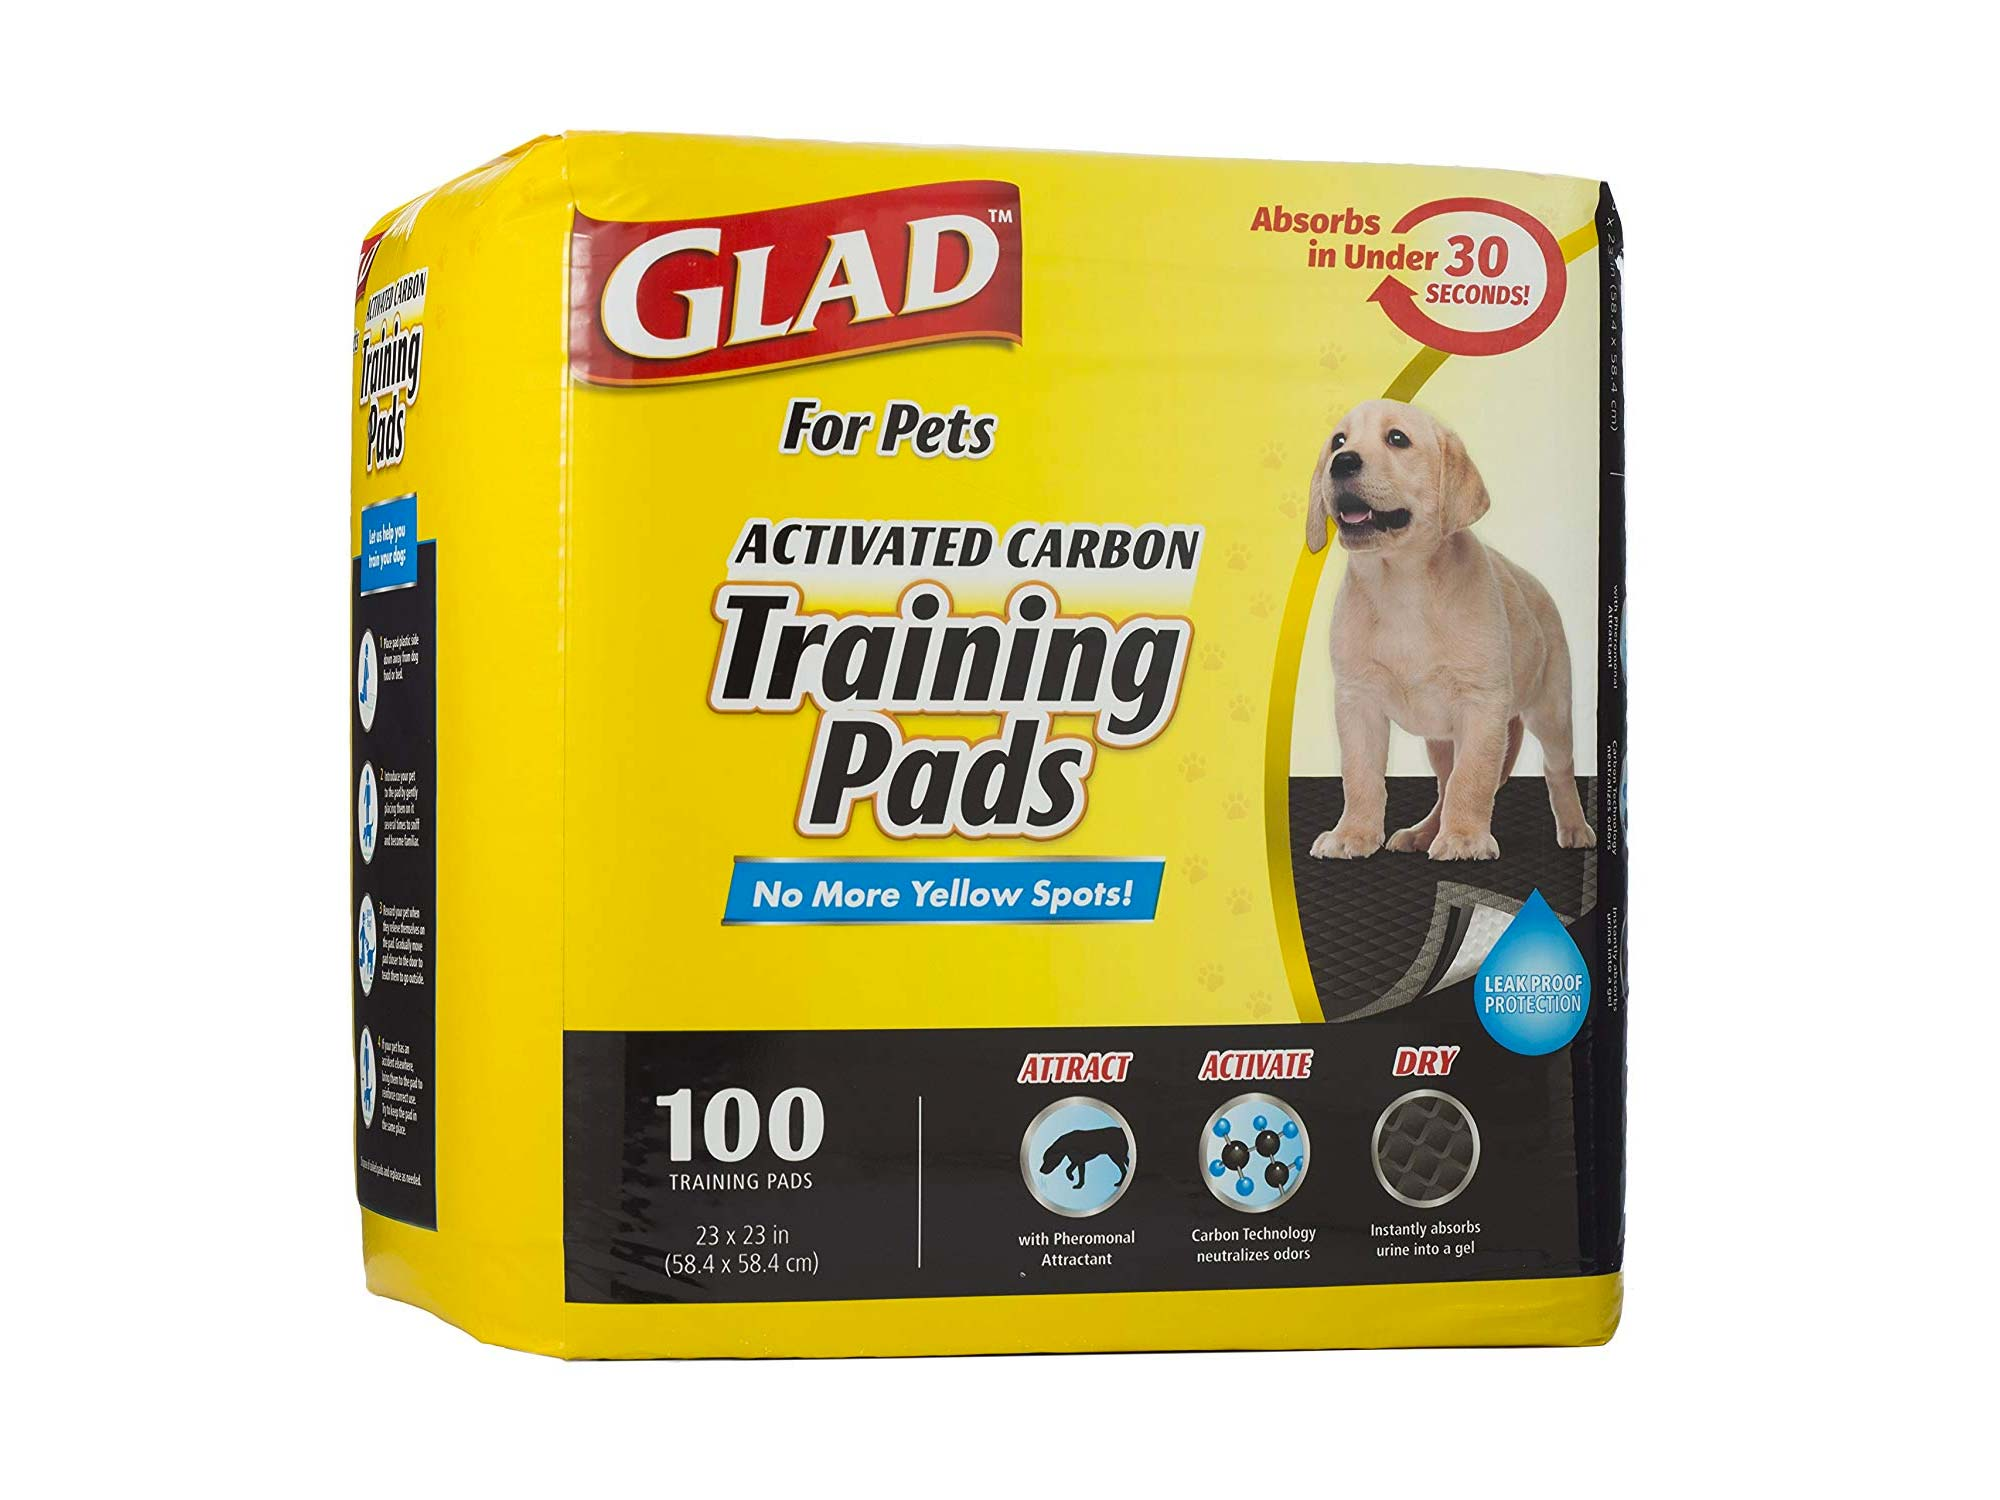 Glad for Pets Black Charcoal Puppy Pads